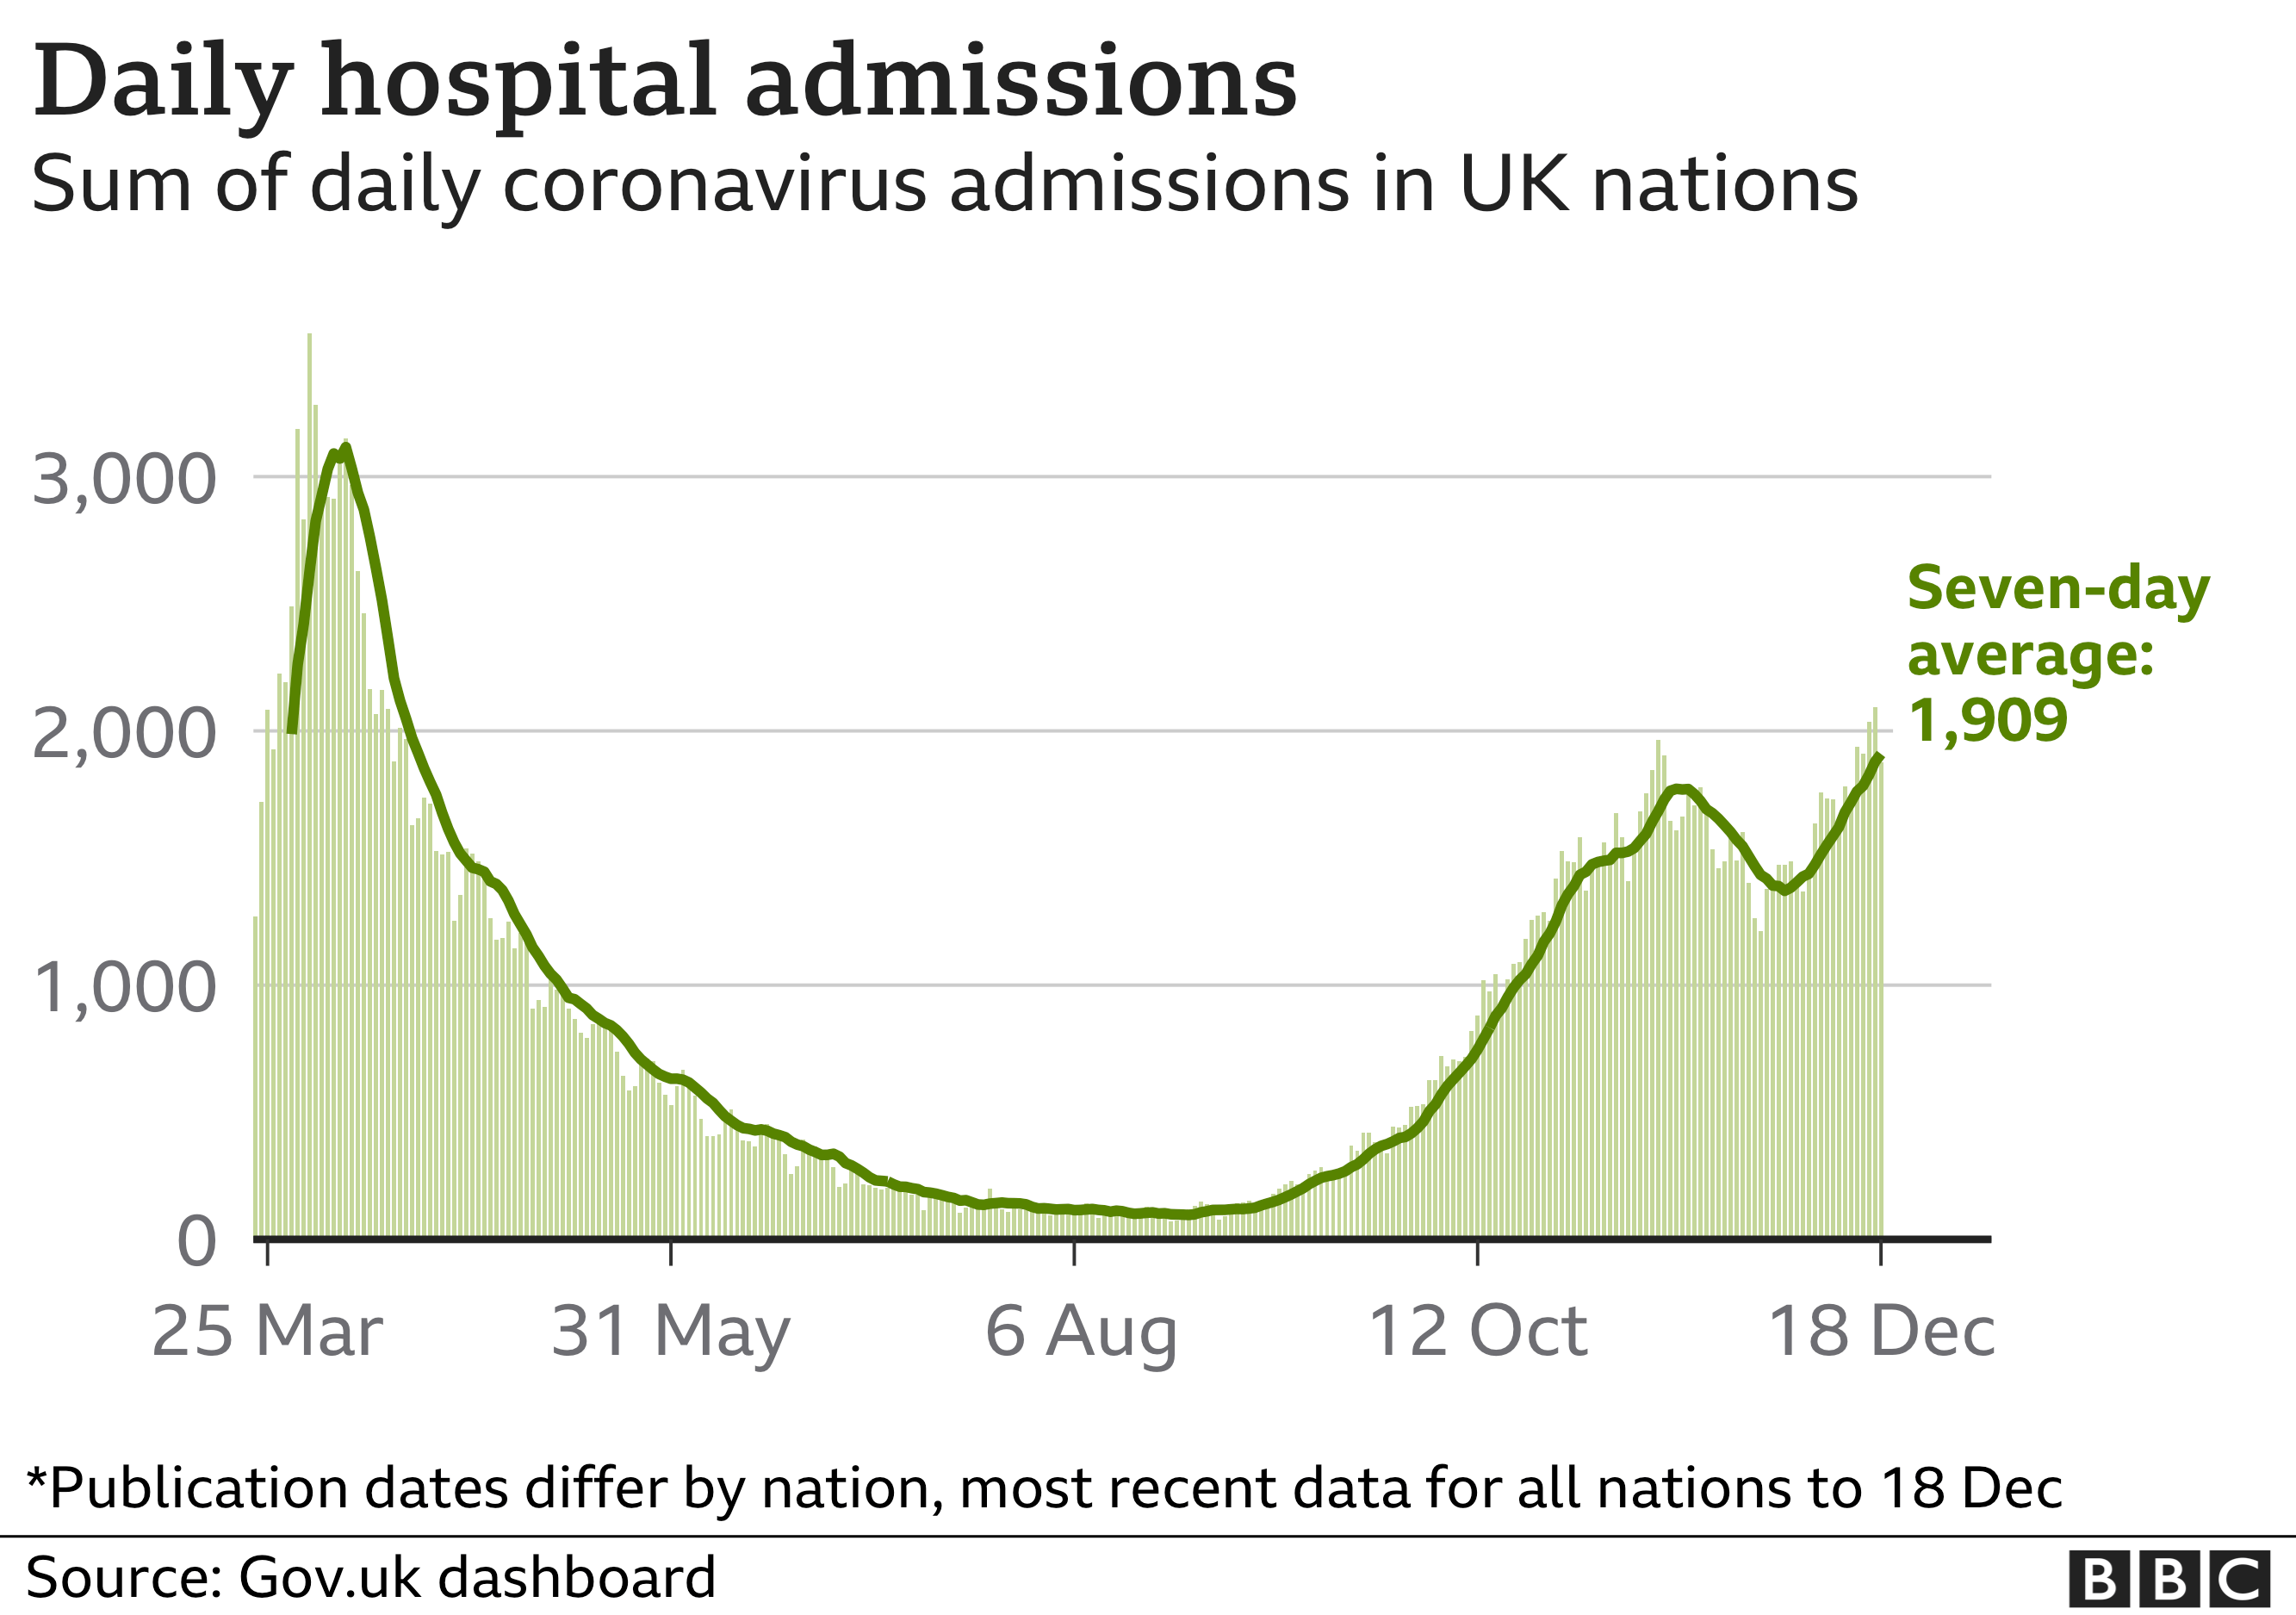 Chart showing daily hospital admissions rising